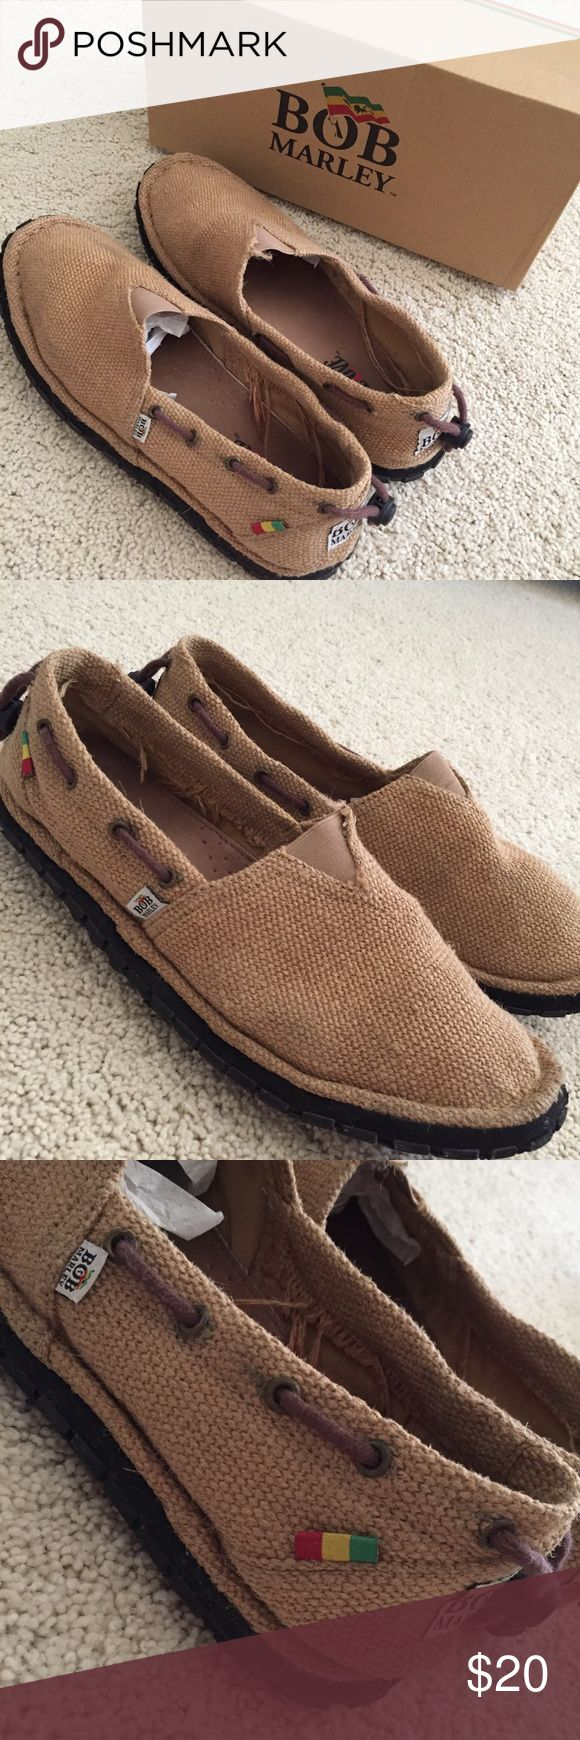 Bob Marley // Kingston Hemp canvas loafer sandal Resemble sanuk slip on shoes/sandals. Worn once. Comment any questions below. In excellent condition Shoes Loafers & Slip-Ons